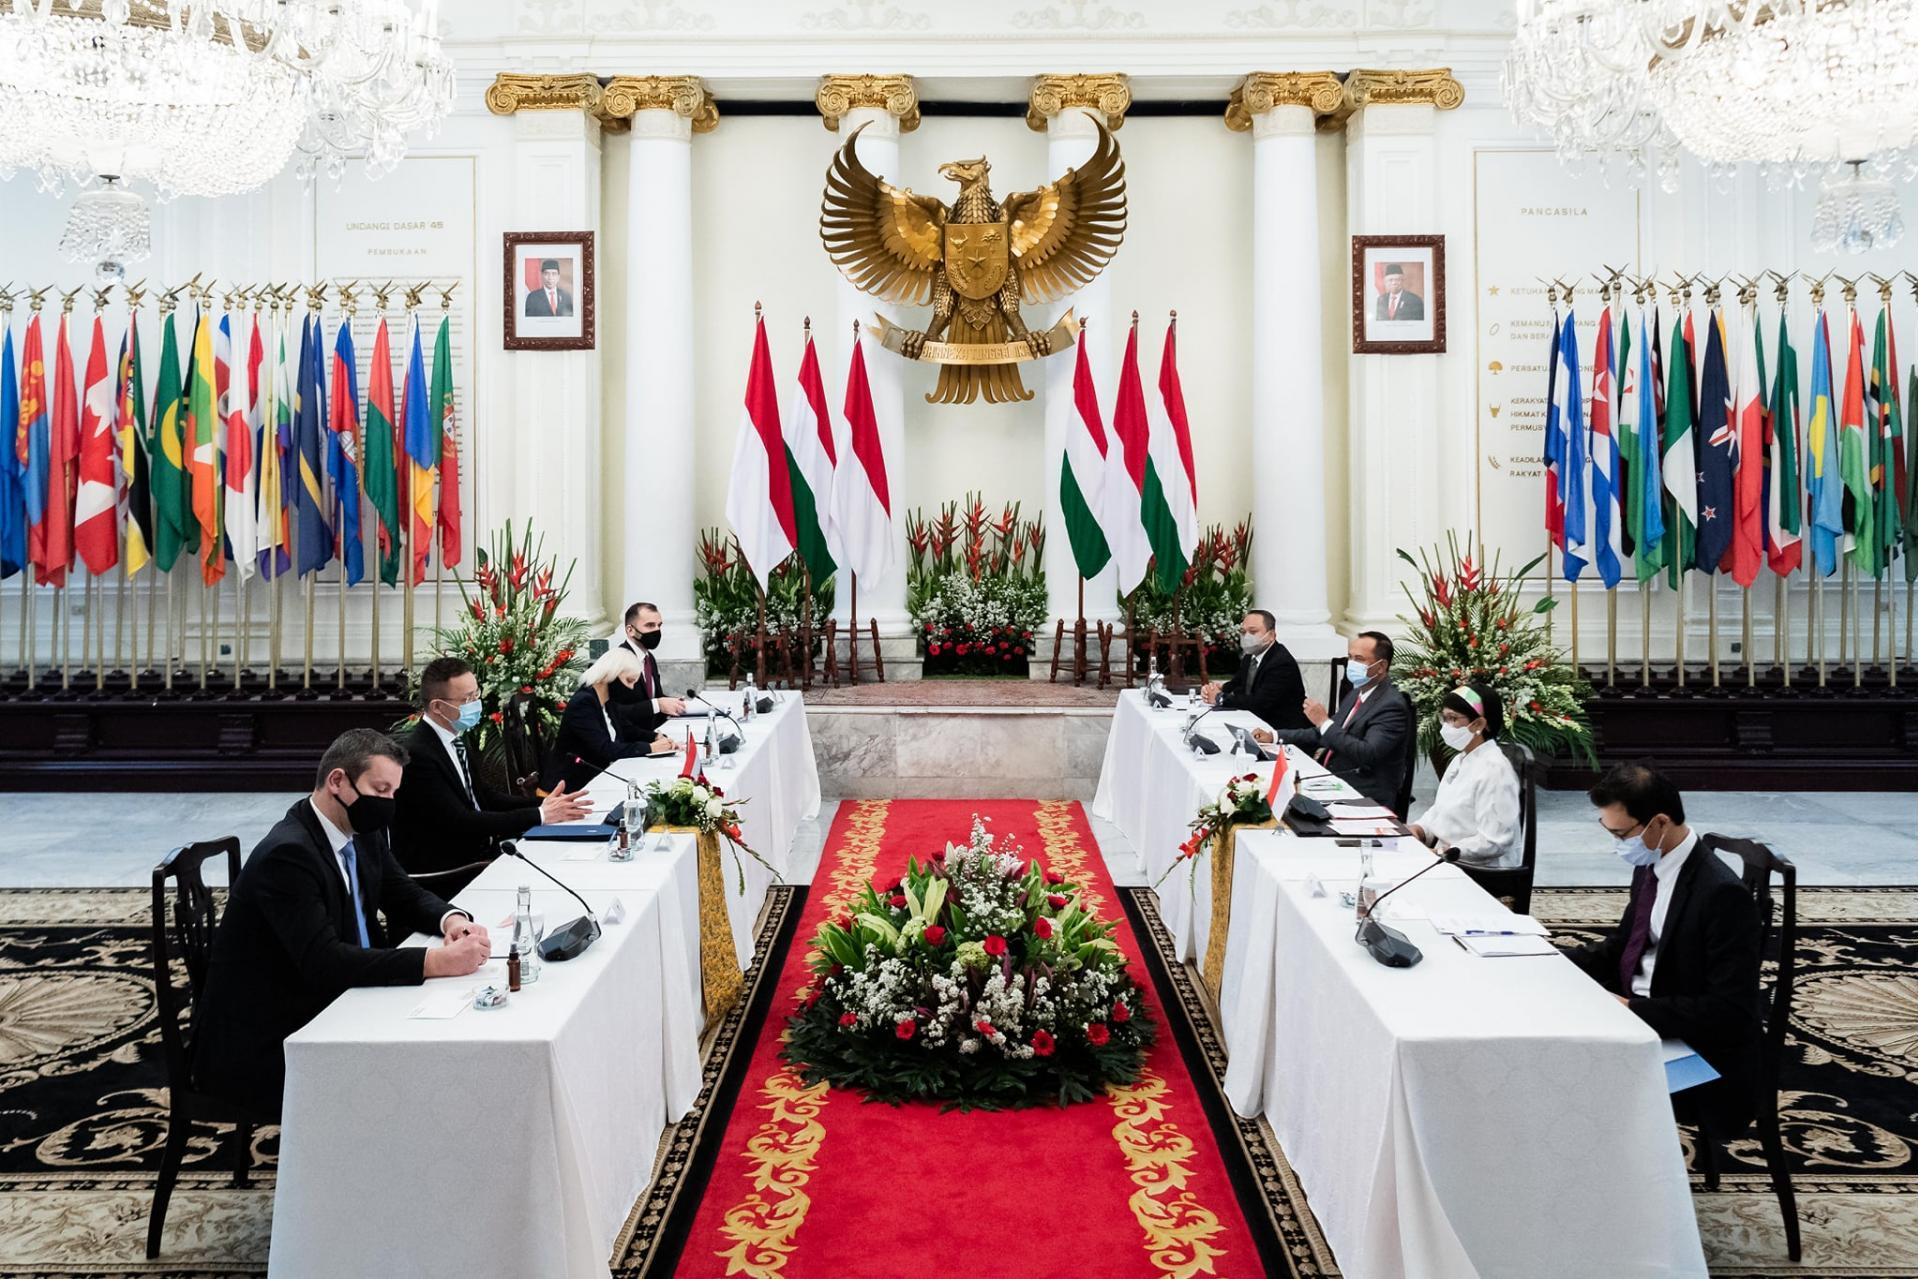 FM: Indonesian investment is Hungary's biggest technology export so far